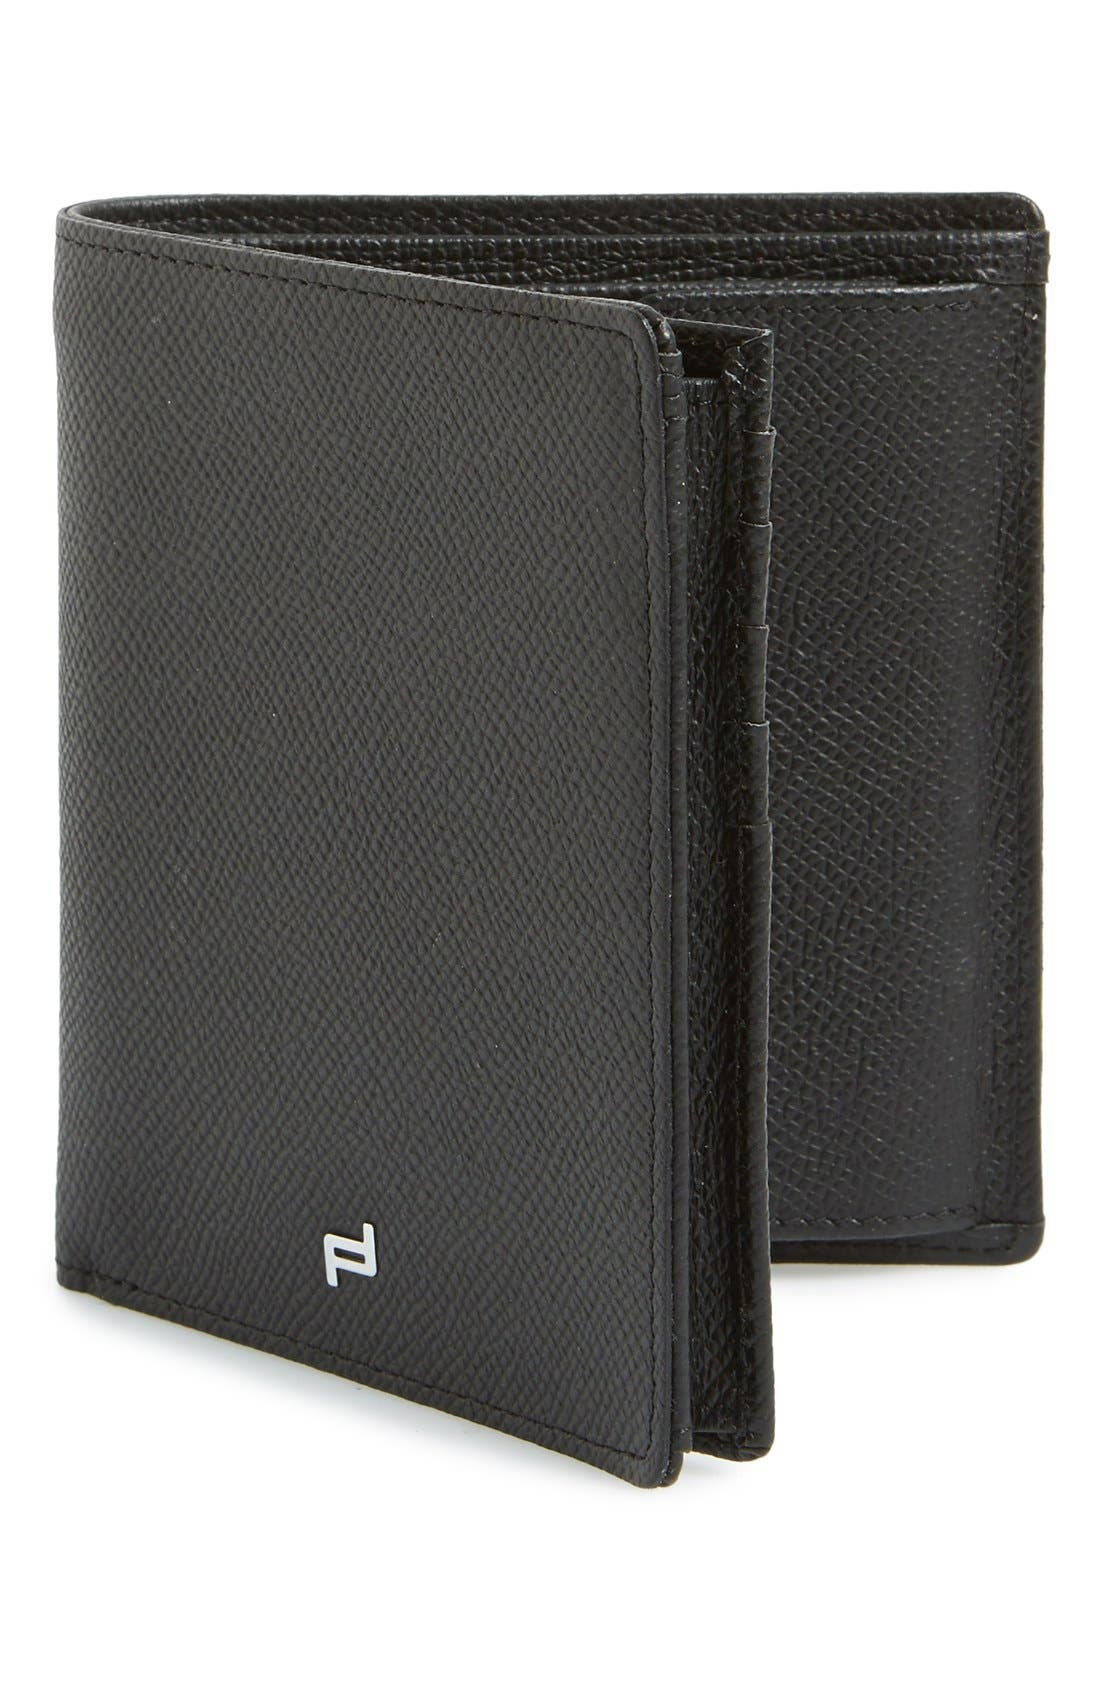 PORSCHE DESIGN 'FC 3.0' Leather Billfold Wallet